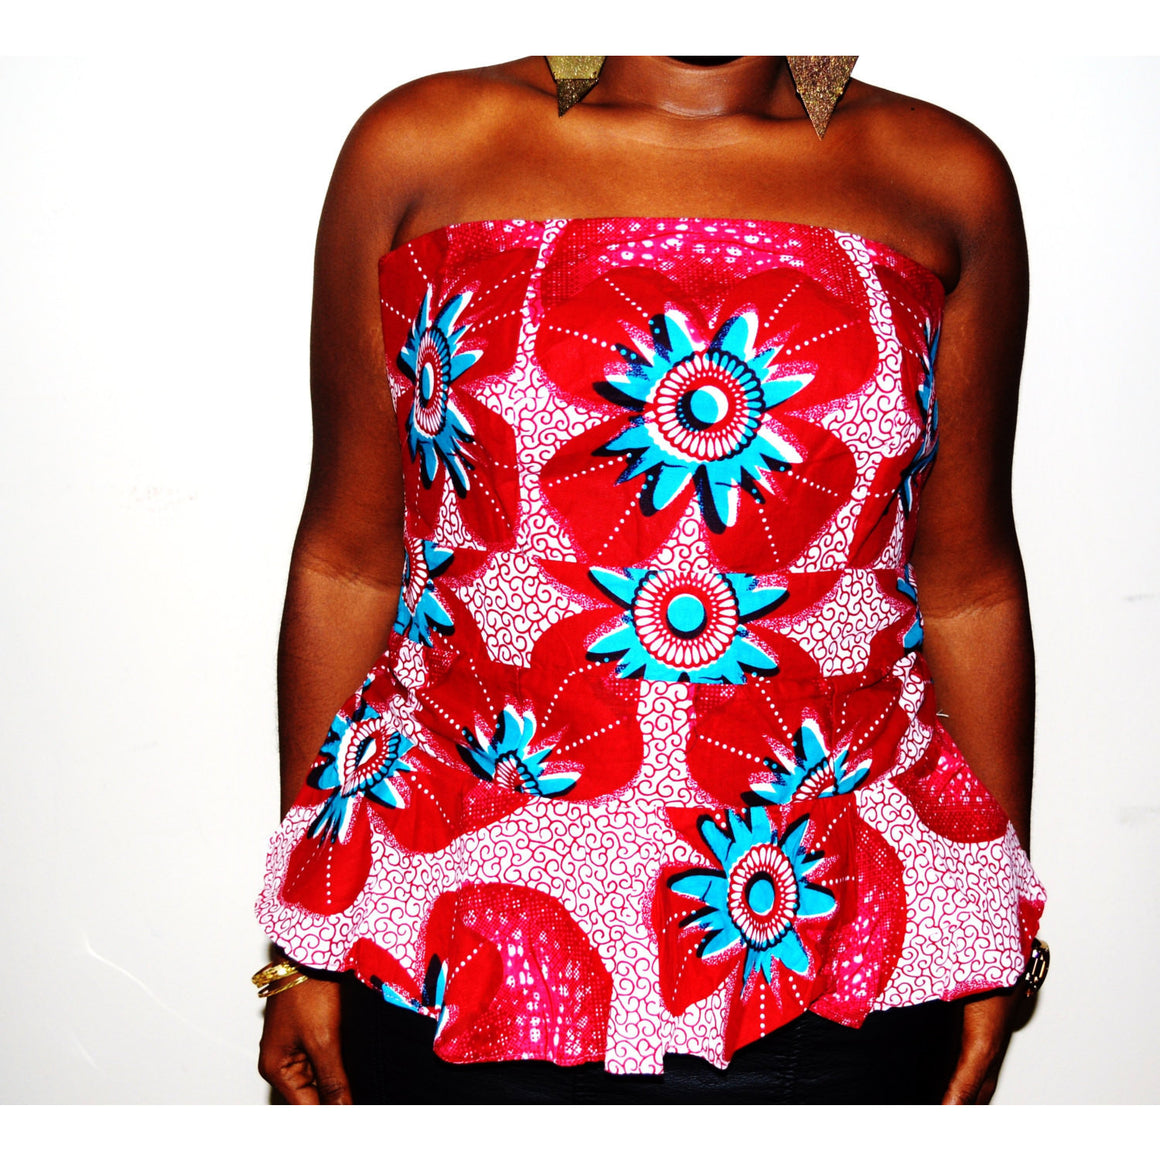 Jamz Pink And Green African Print Strapless Party Top - Zabba Designs African Clothing Store